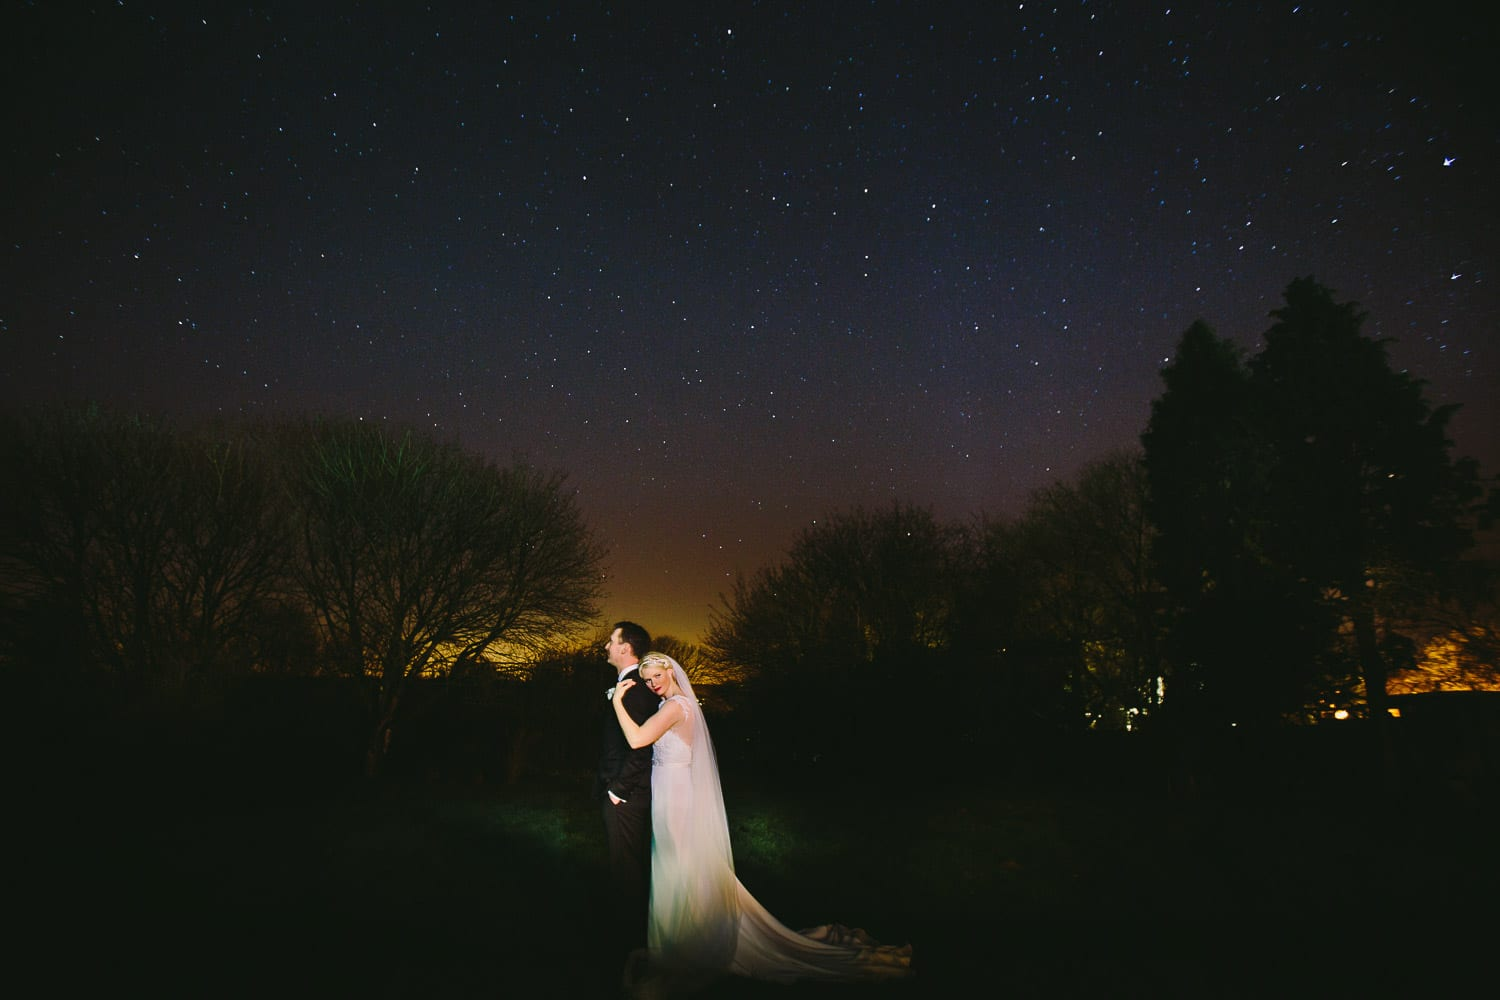 bride and groom portrait under the stars